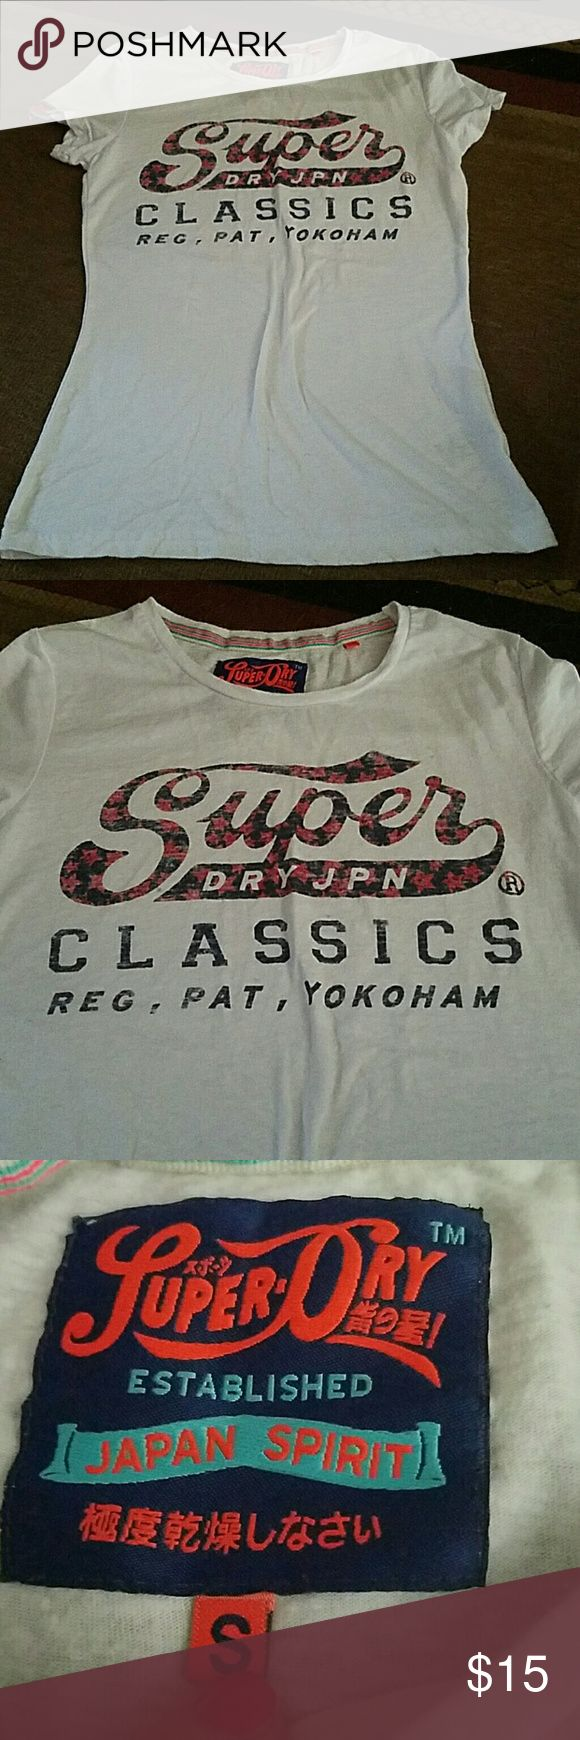 Like new superdry tee shirt Like new superdry Japan t-shirt size small Superdry Tops